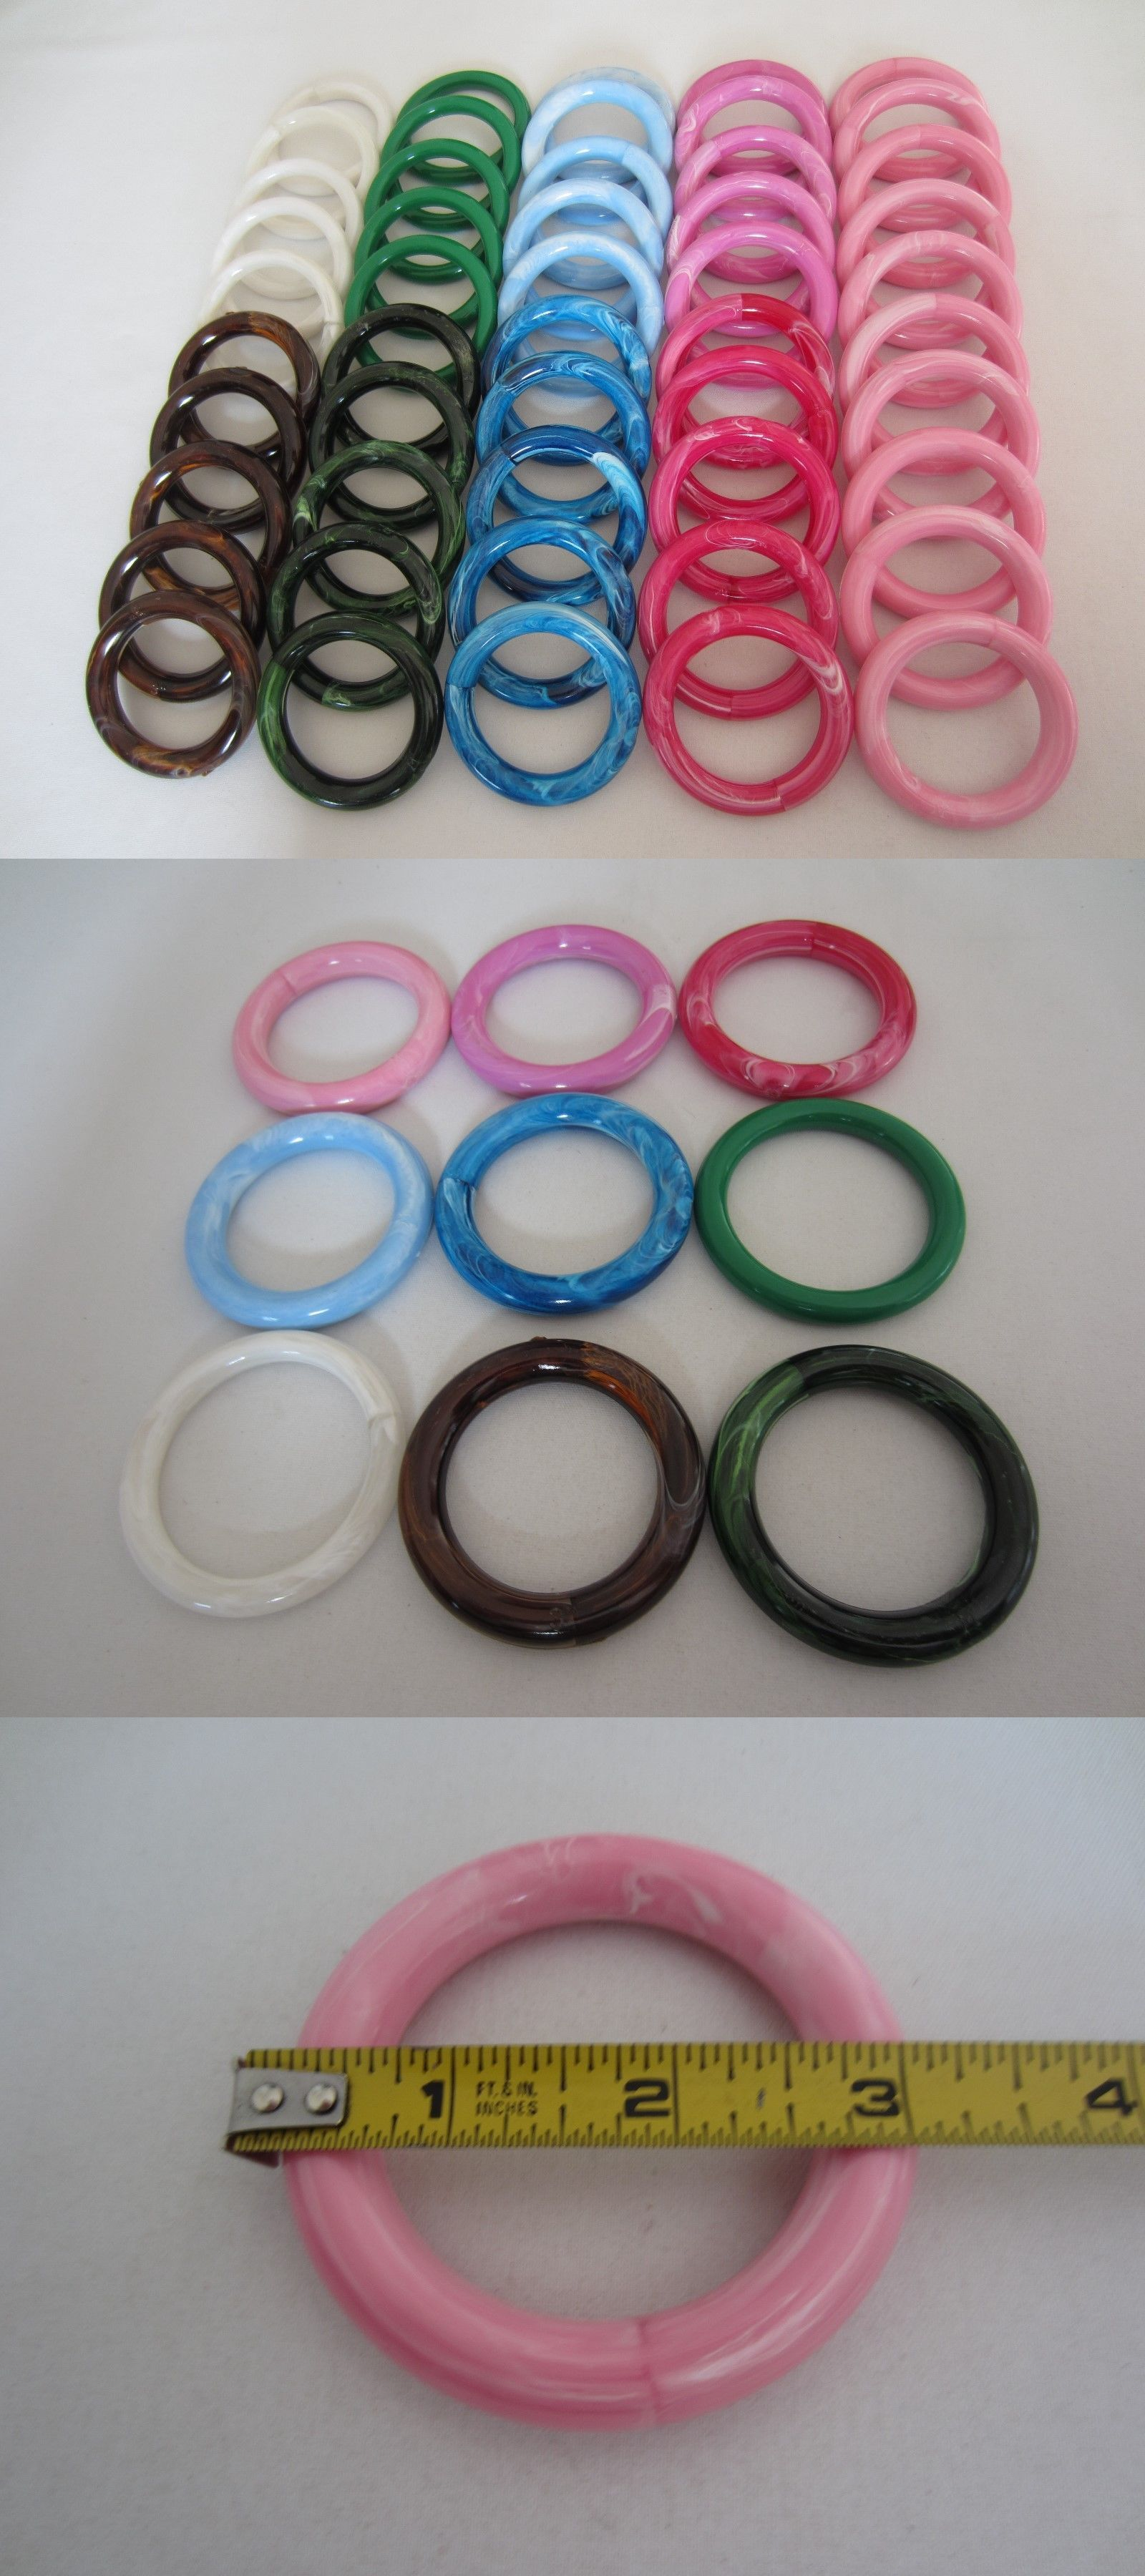 stock photo high and rings picture getty colourful keyrings bobble res hair photography plastic detail